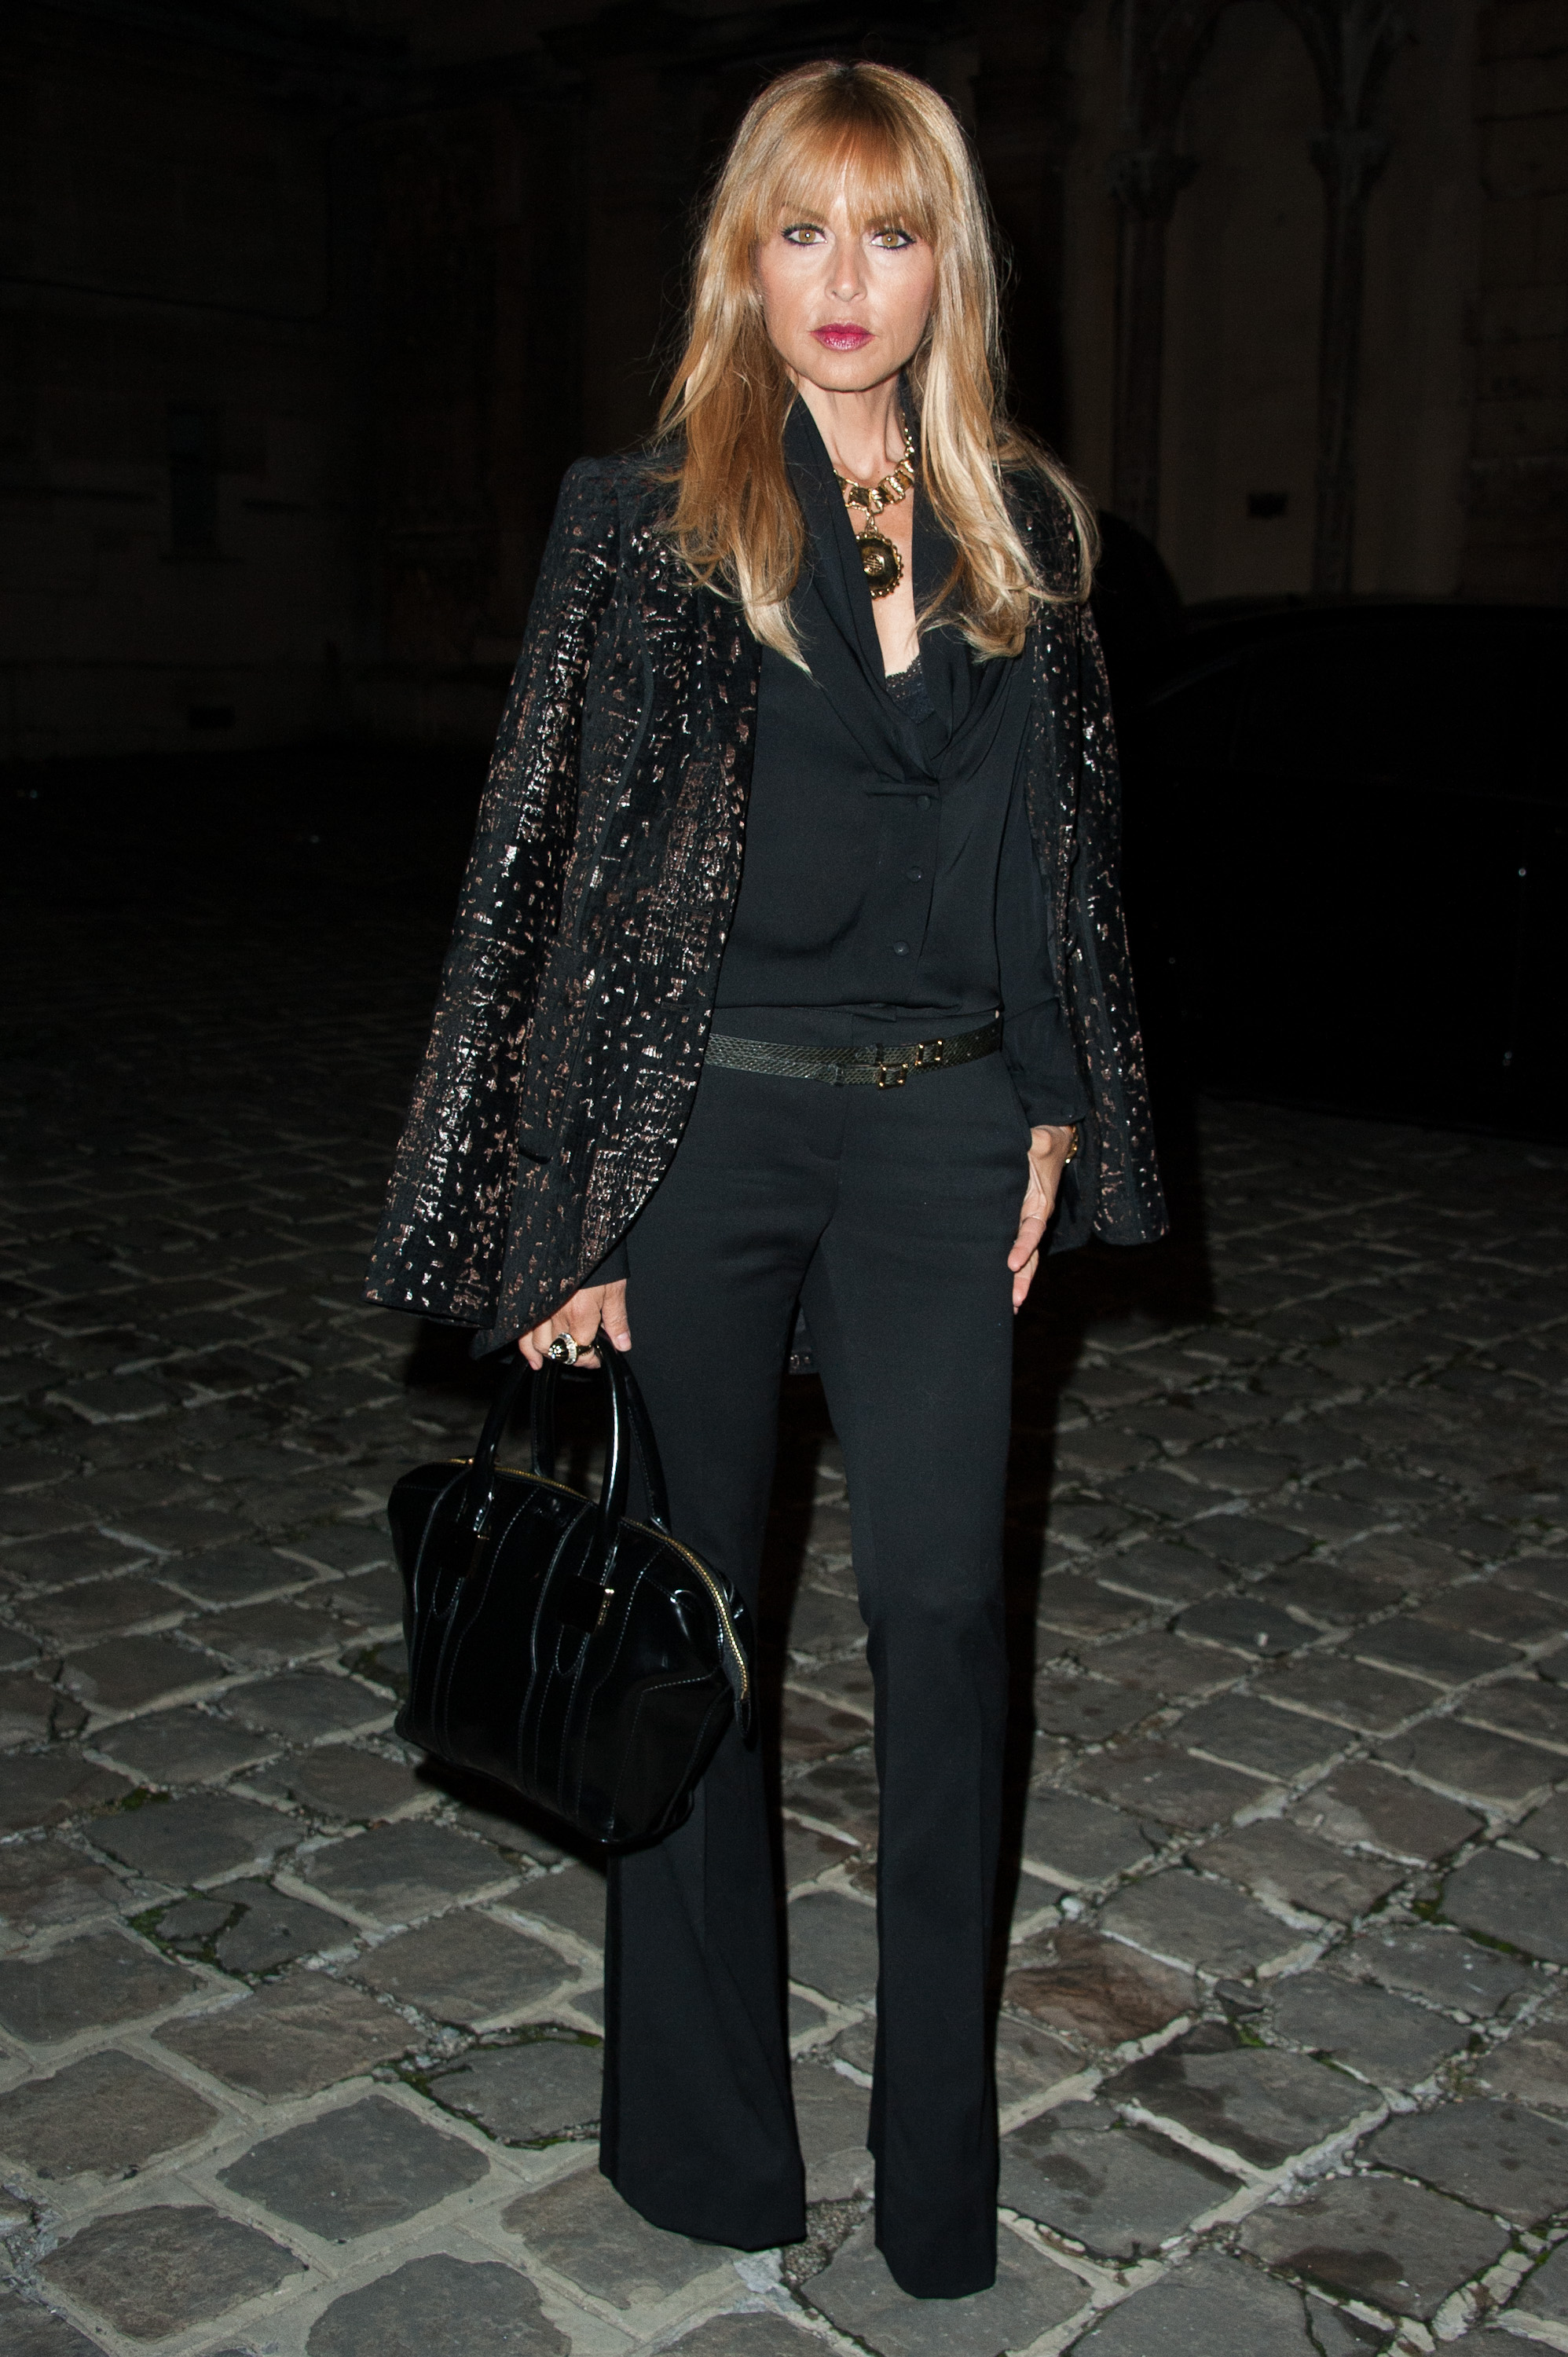 Rachel Zoe, with bangs, donned her signature wide-leg silhouette and a jacket-slung-on-the-shoulders look at the Lanvin show.